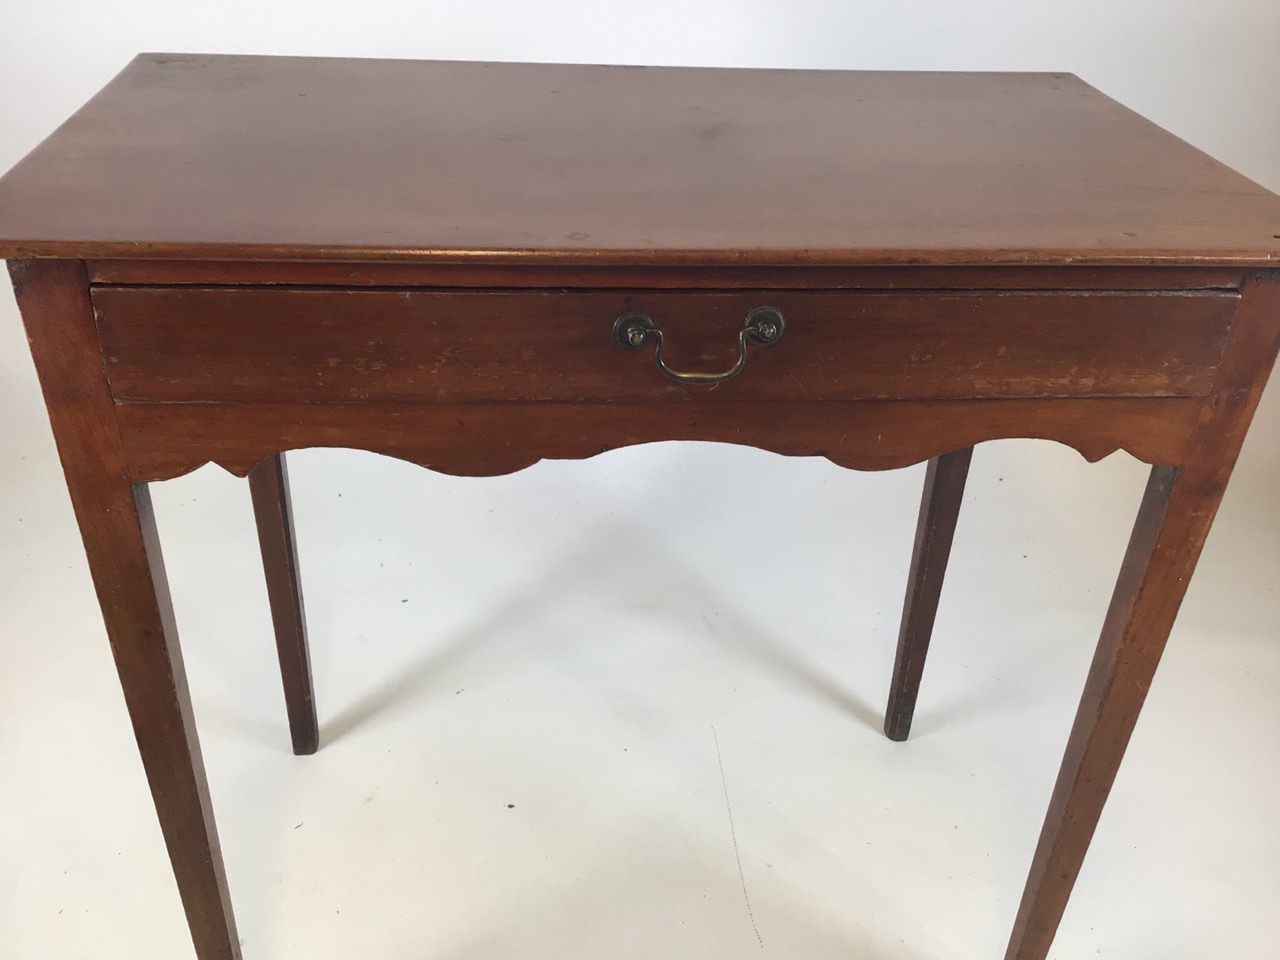 Small antique Georgian style side table with tapered legs with large central drawers and brass - Image 6 of 8